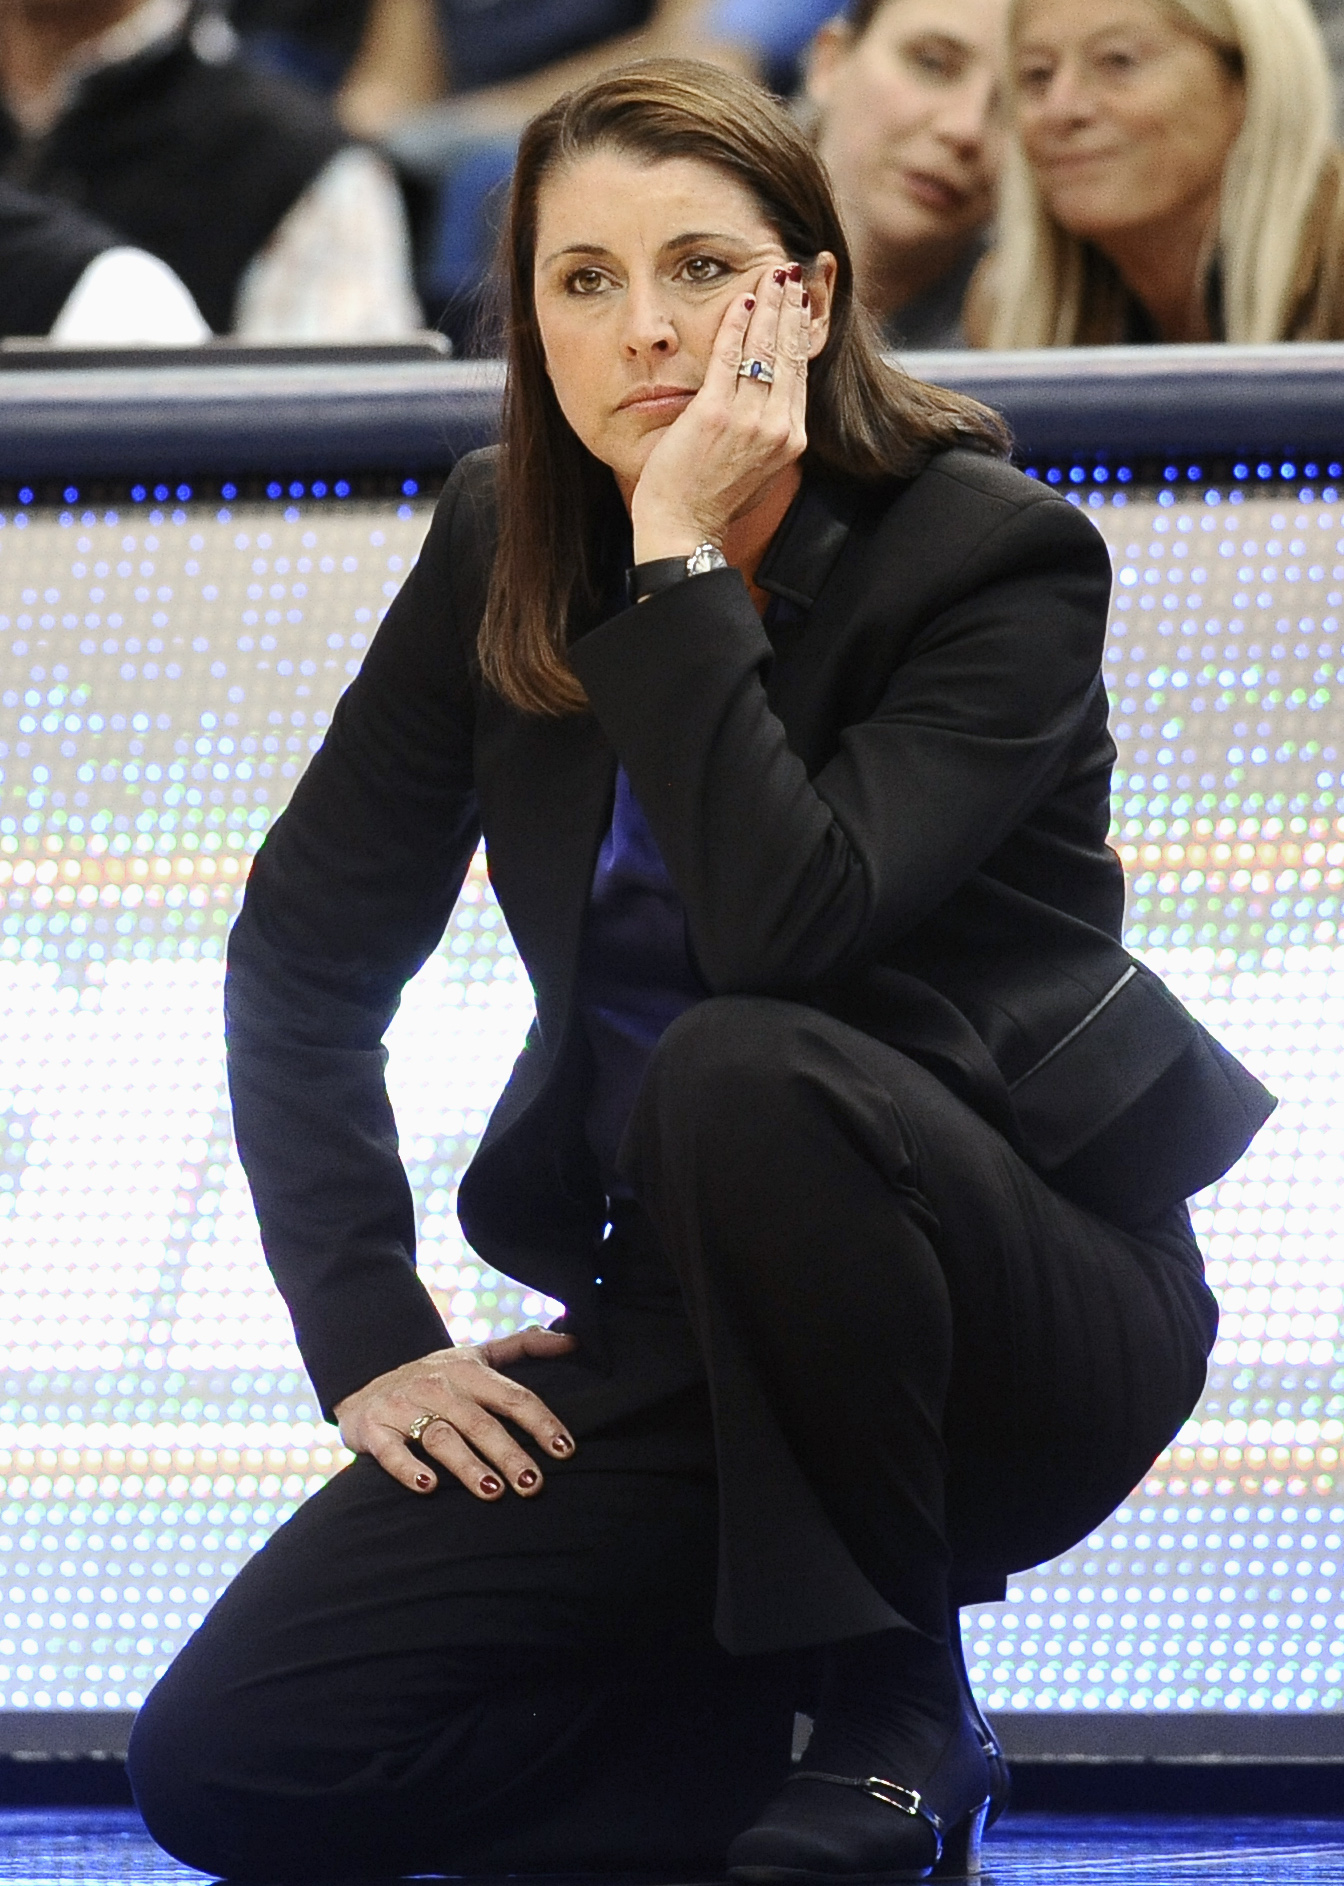 Duke head coach Joanne P. McCallie watches play during the second half of an NCAA college basketball game against Connecticut, Monday, Dec. 29, 2014, in Hartford, Conn. Connecticut won 83-52.  (AP Photo/Jessica Hill)